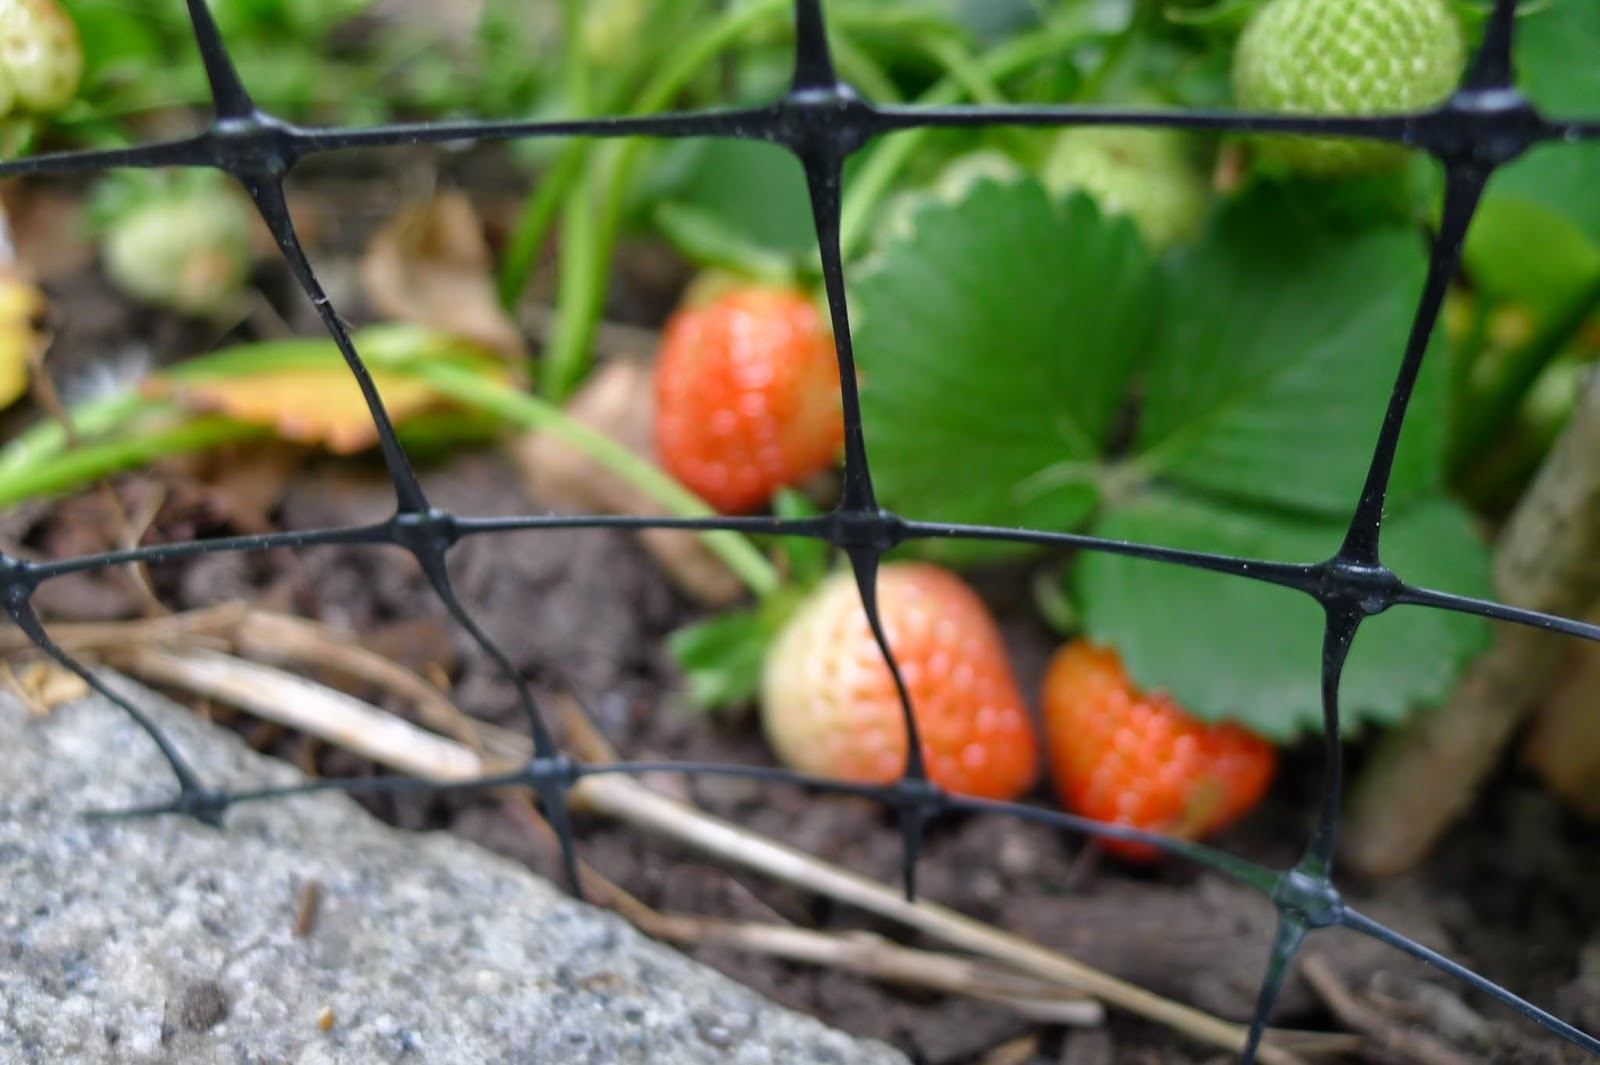 Netting over strawberries, organic pest control, urban farming